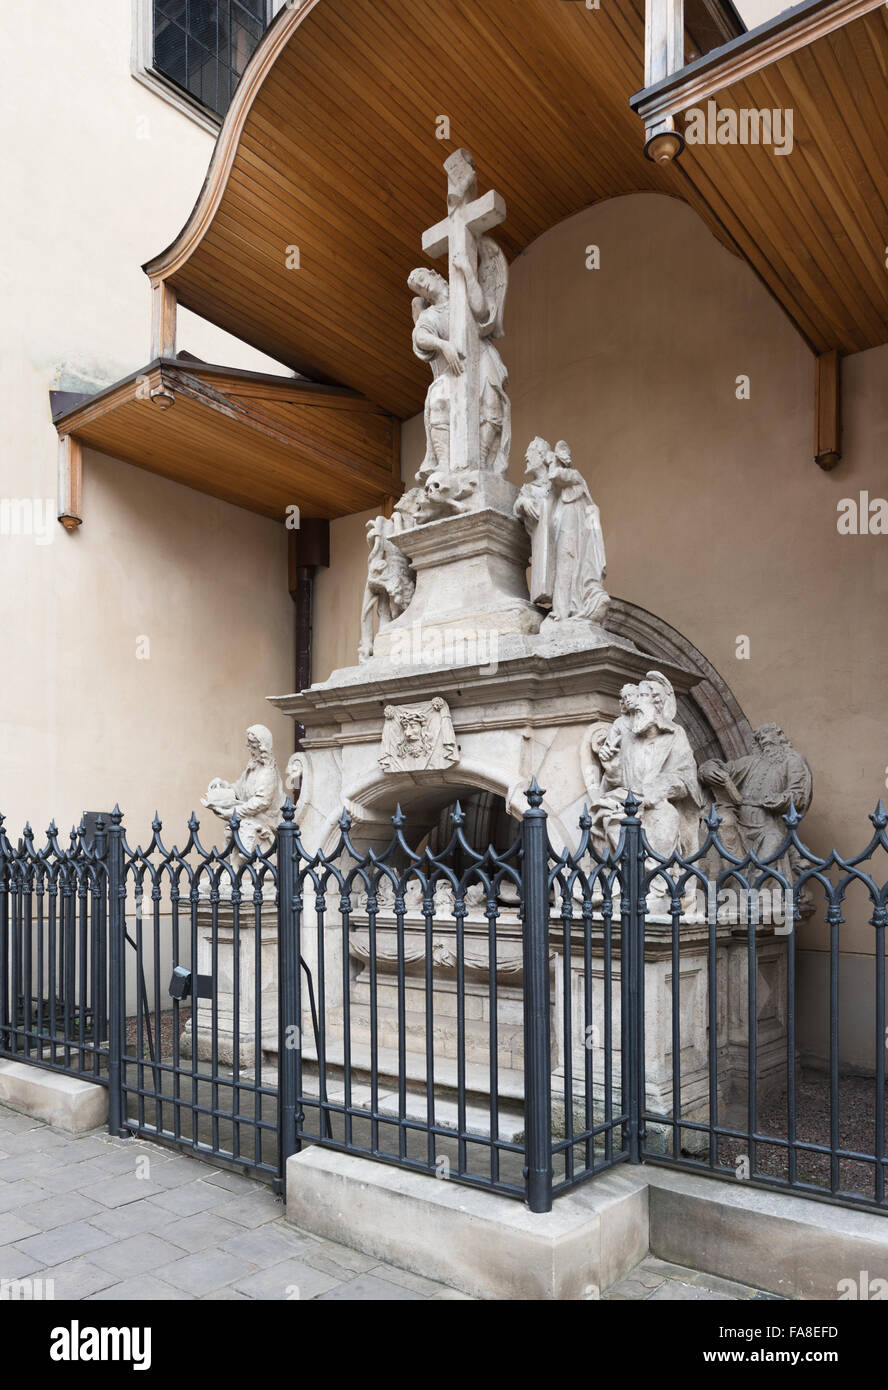 Tombstone sculptures near Latin cathedral in Lviv - Stock Image